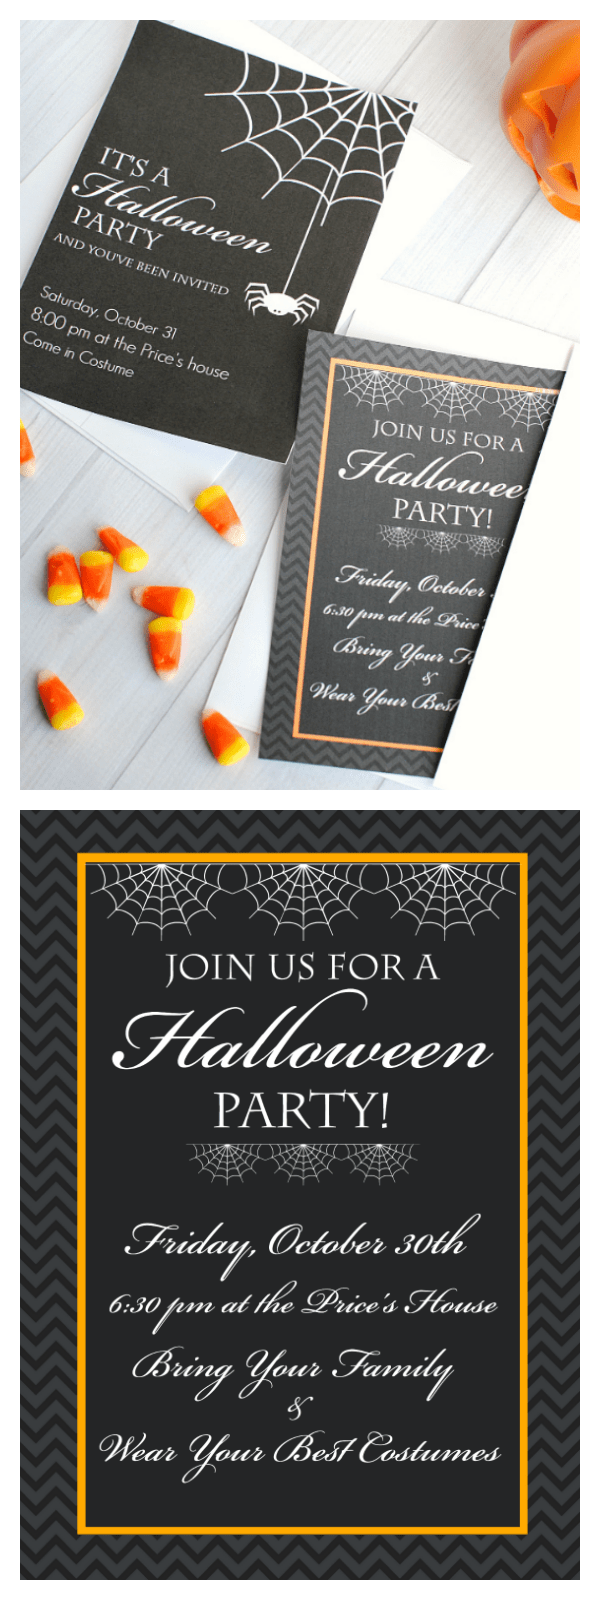 photograph about Free Printable Halloween Party Invitations named Lovely Free of charge Printable Halloween Invites Entertaining-Squared